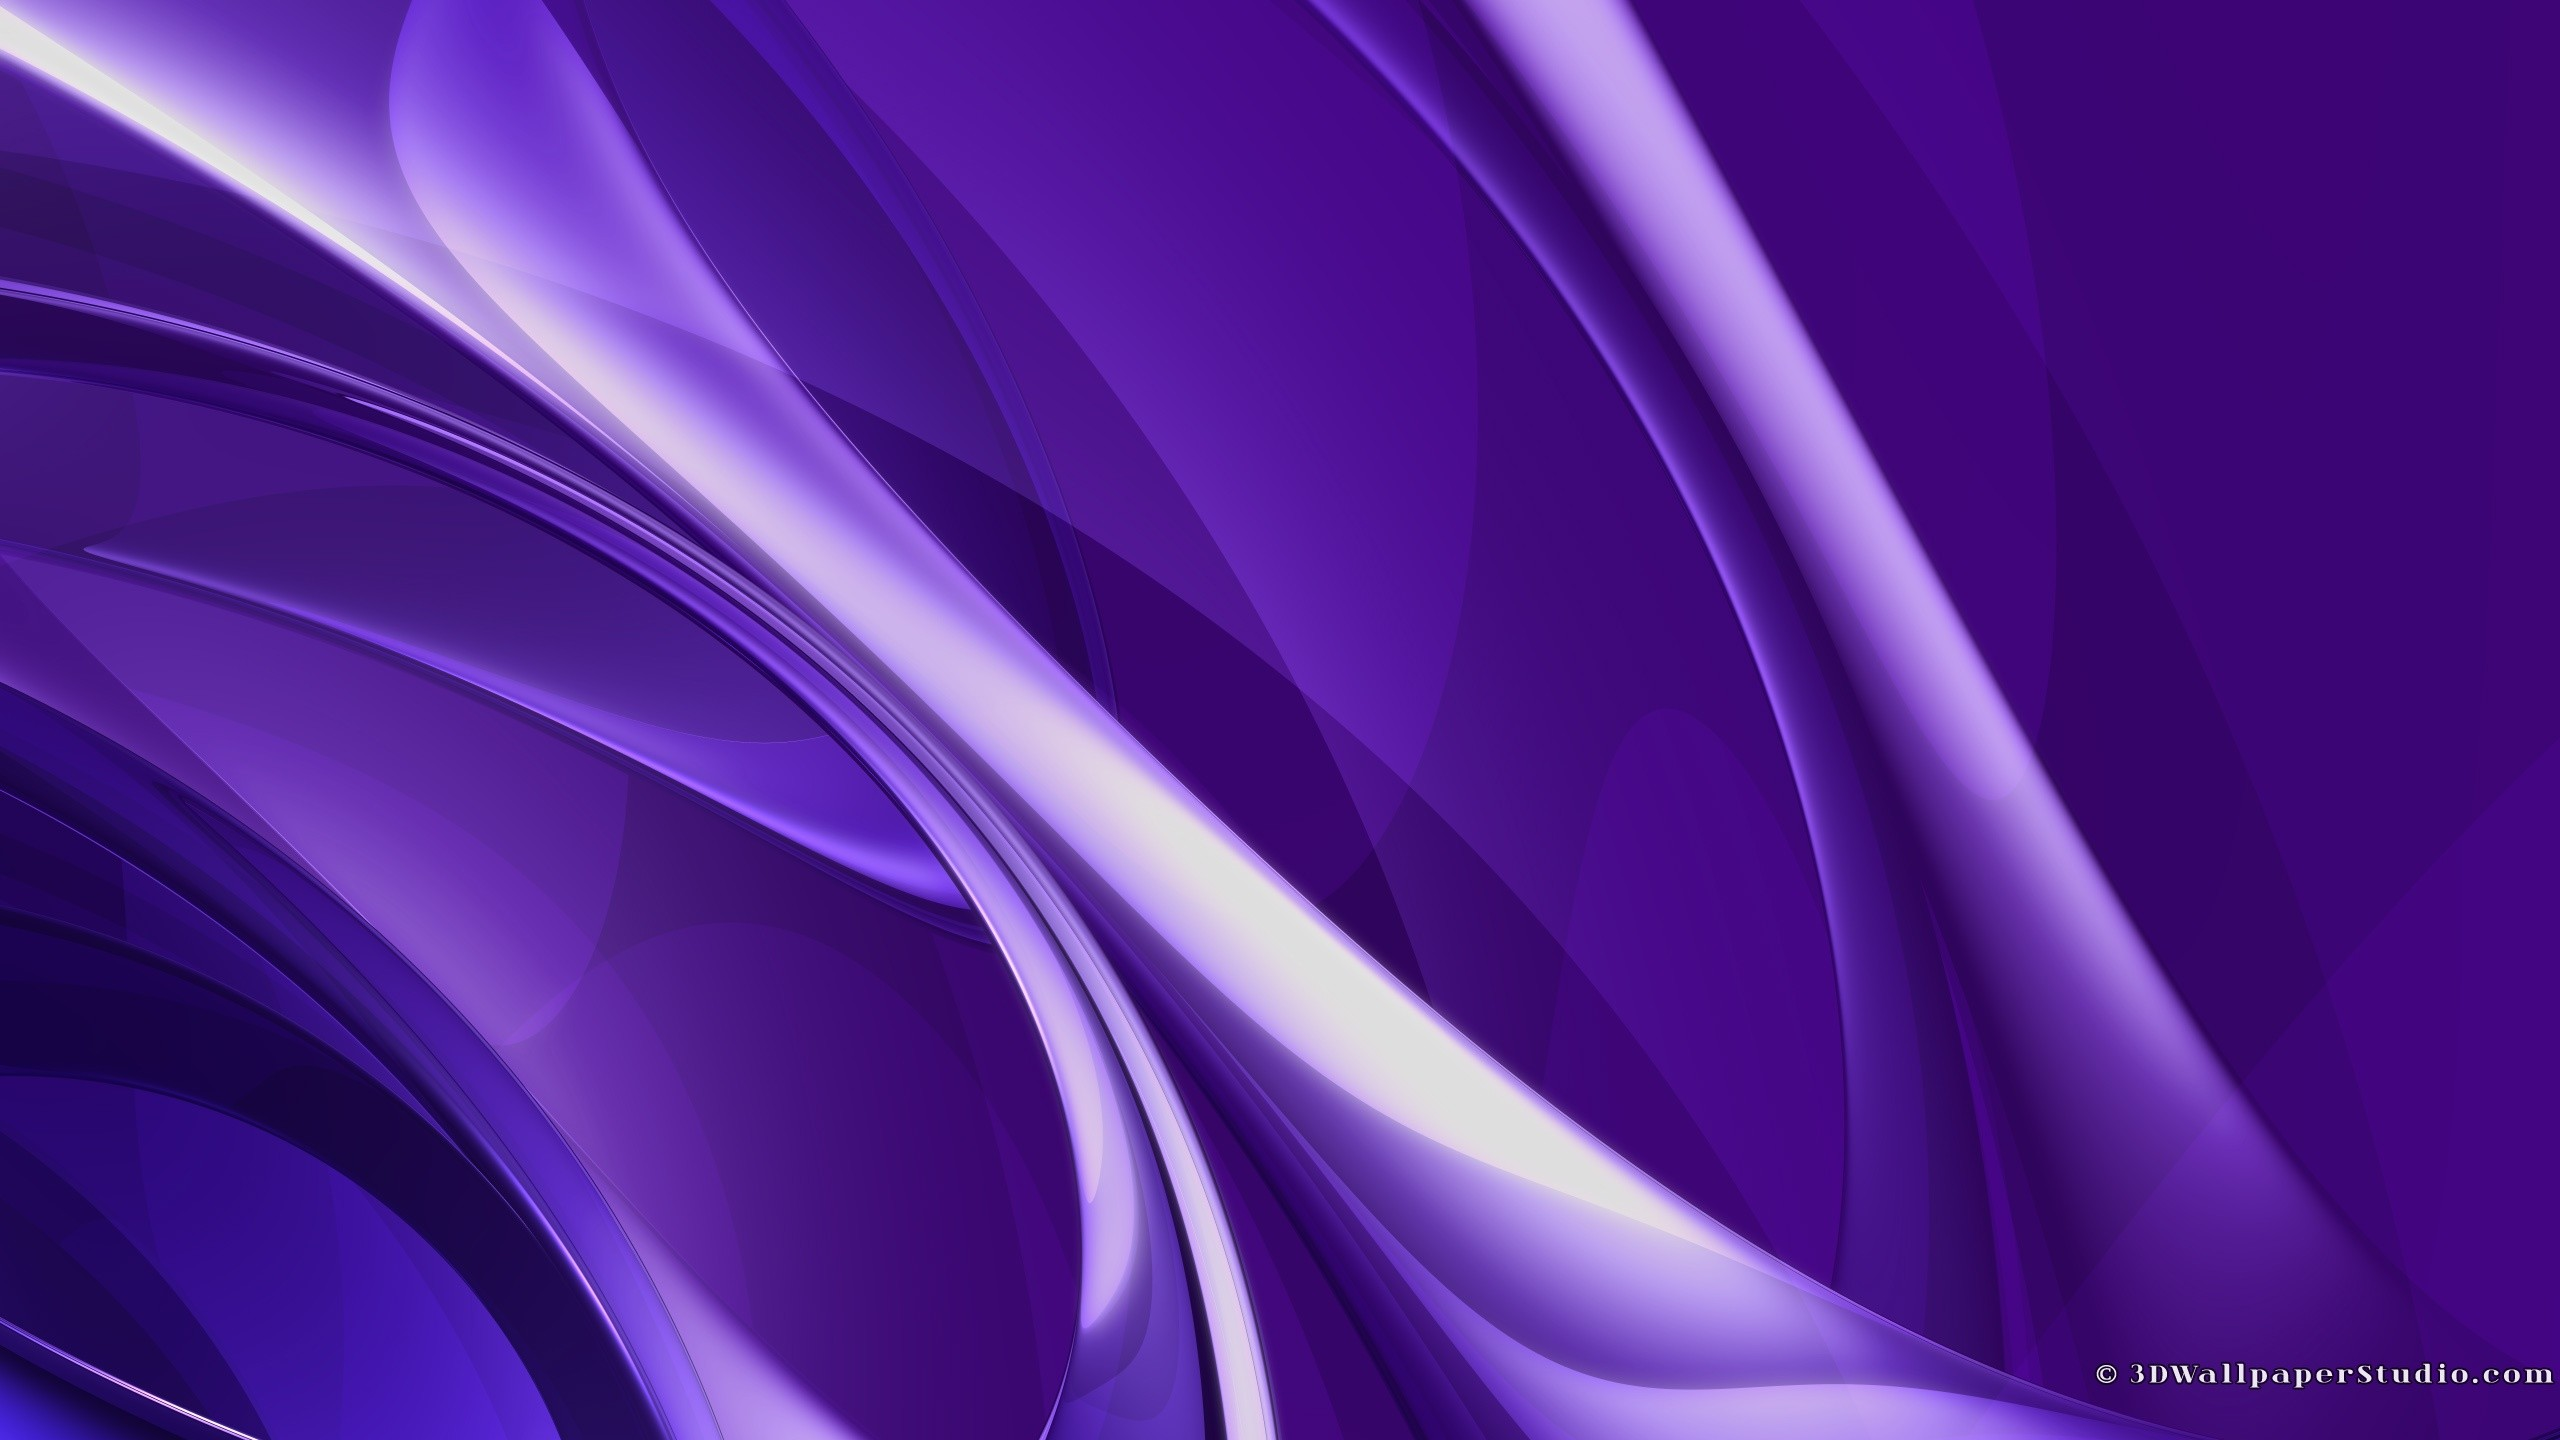 Go Back > Images For > Awesome Purple Abstract Backgrounds